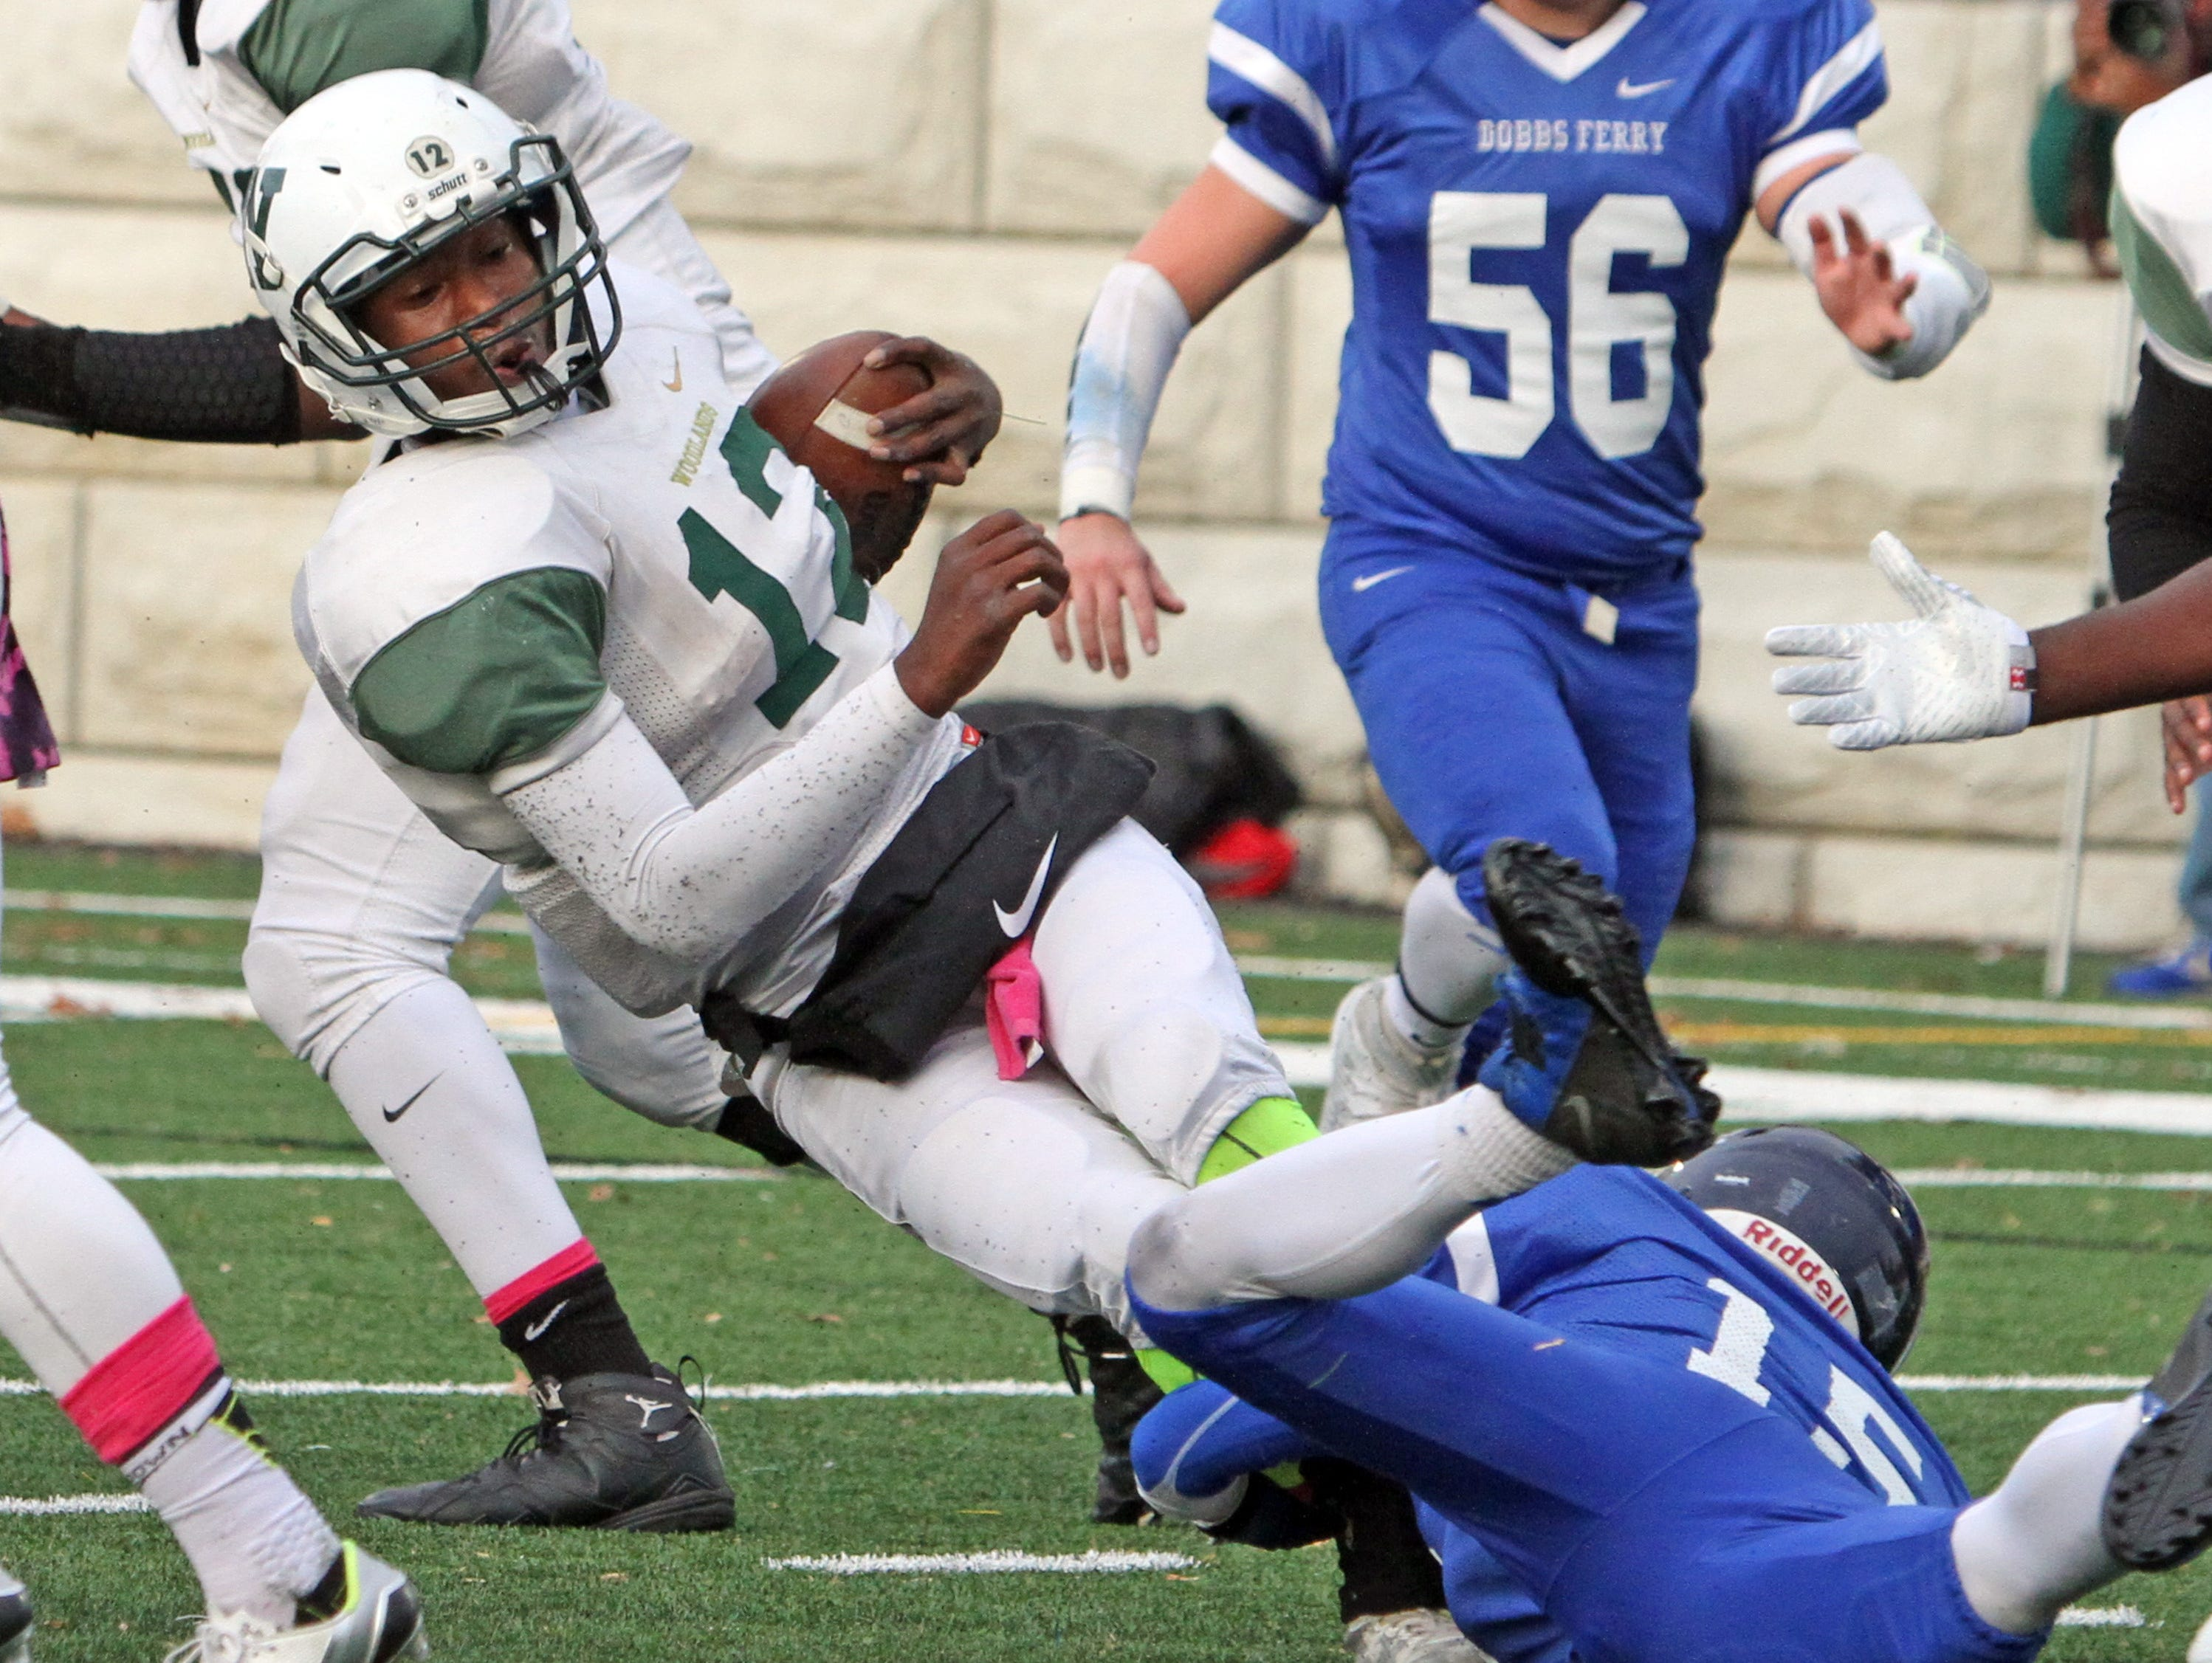 Hadi Darvash of Dobbs Ferry takes down Woodlands quarterback Amari Bilal during the Class C championship game at Pace University Oct. 31, 2015. Dobbs Ferry defeated Woodlands 35-0.